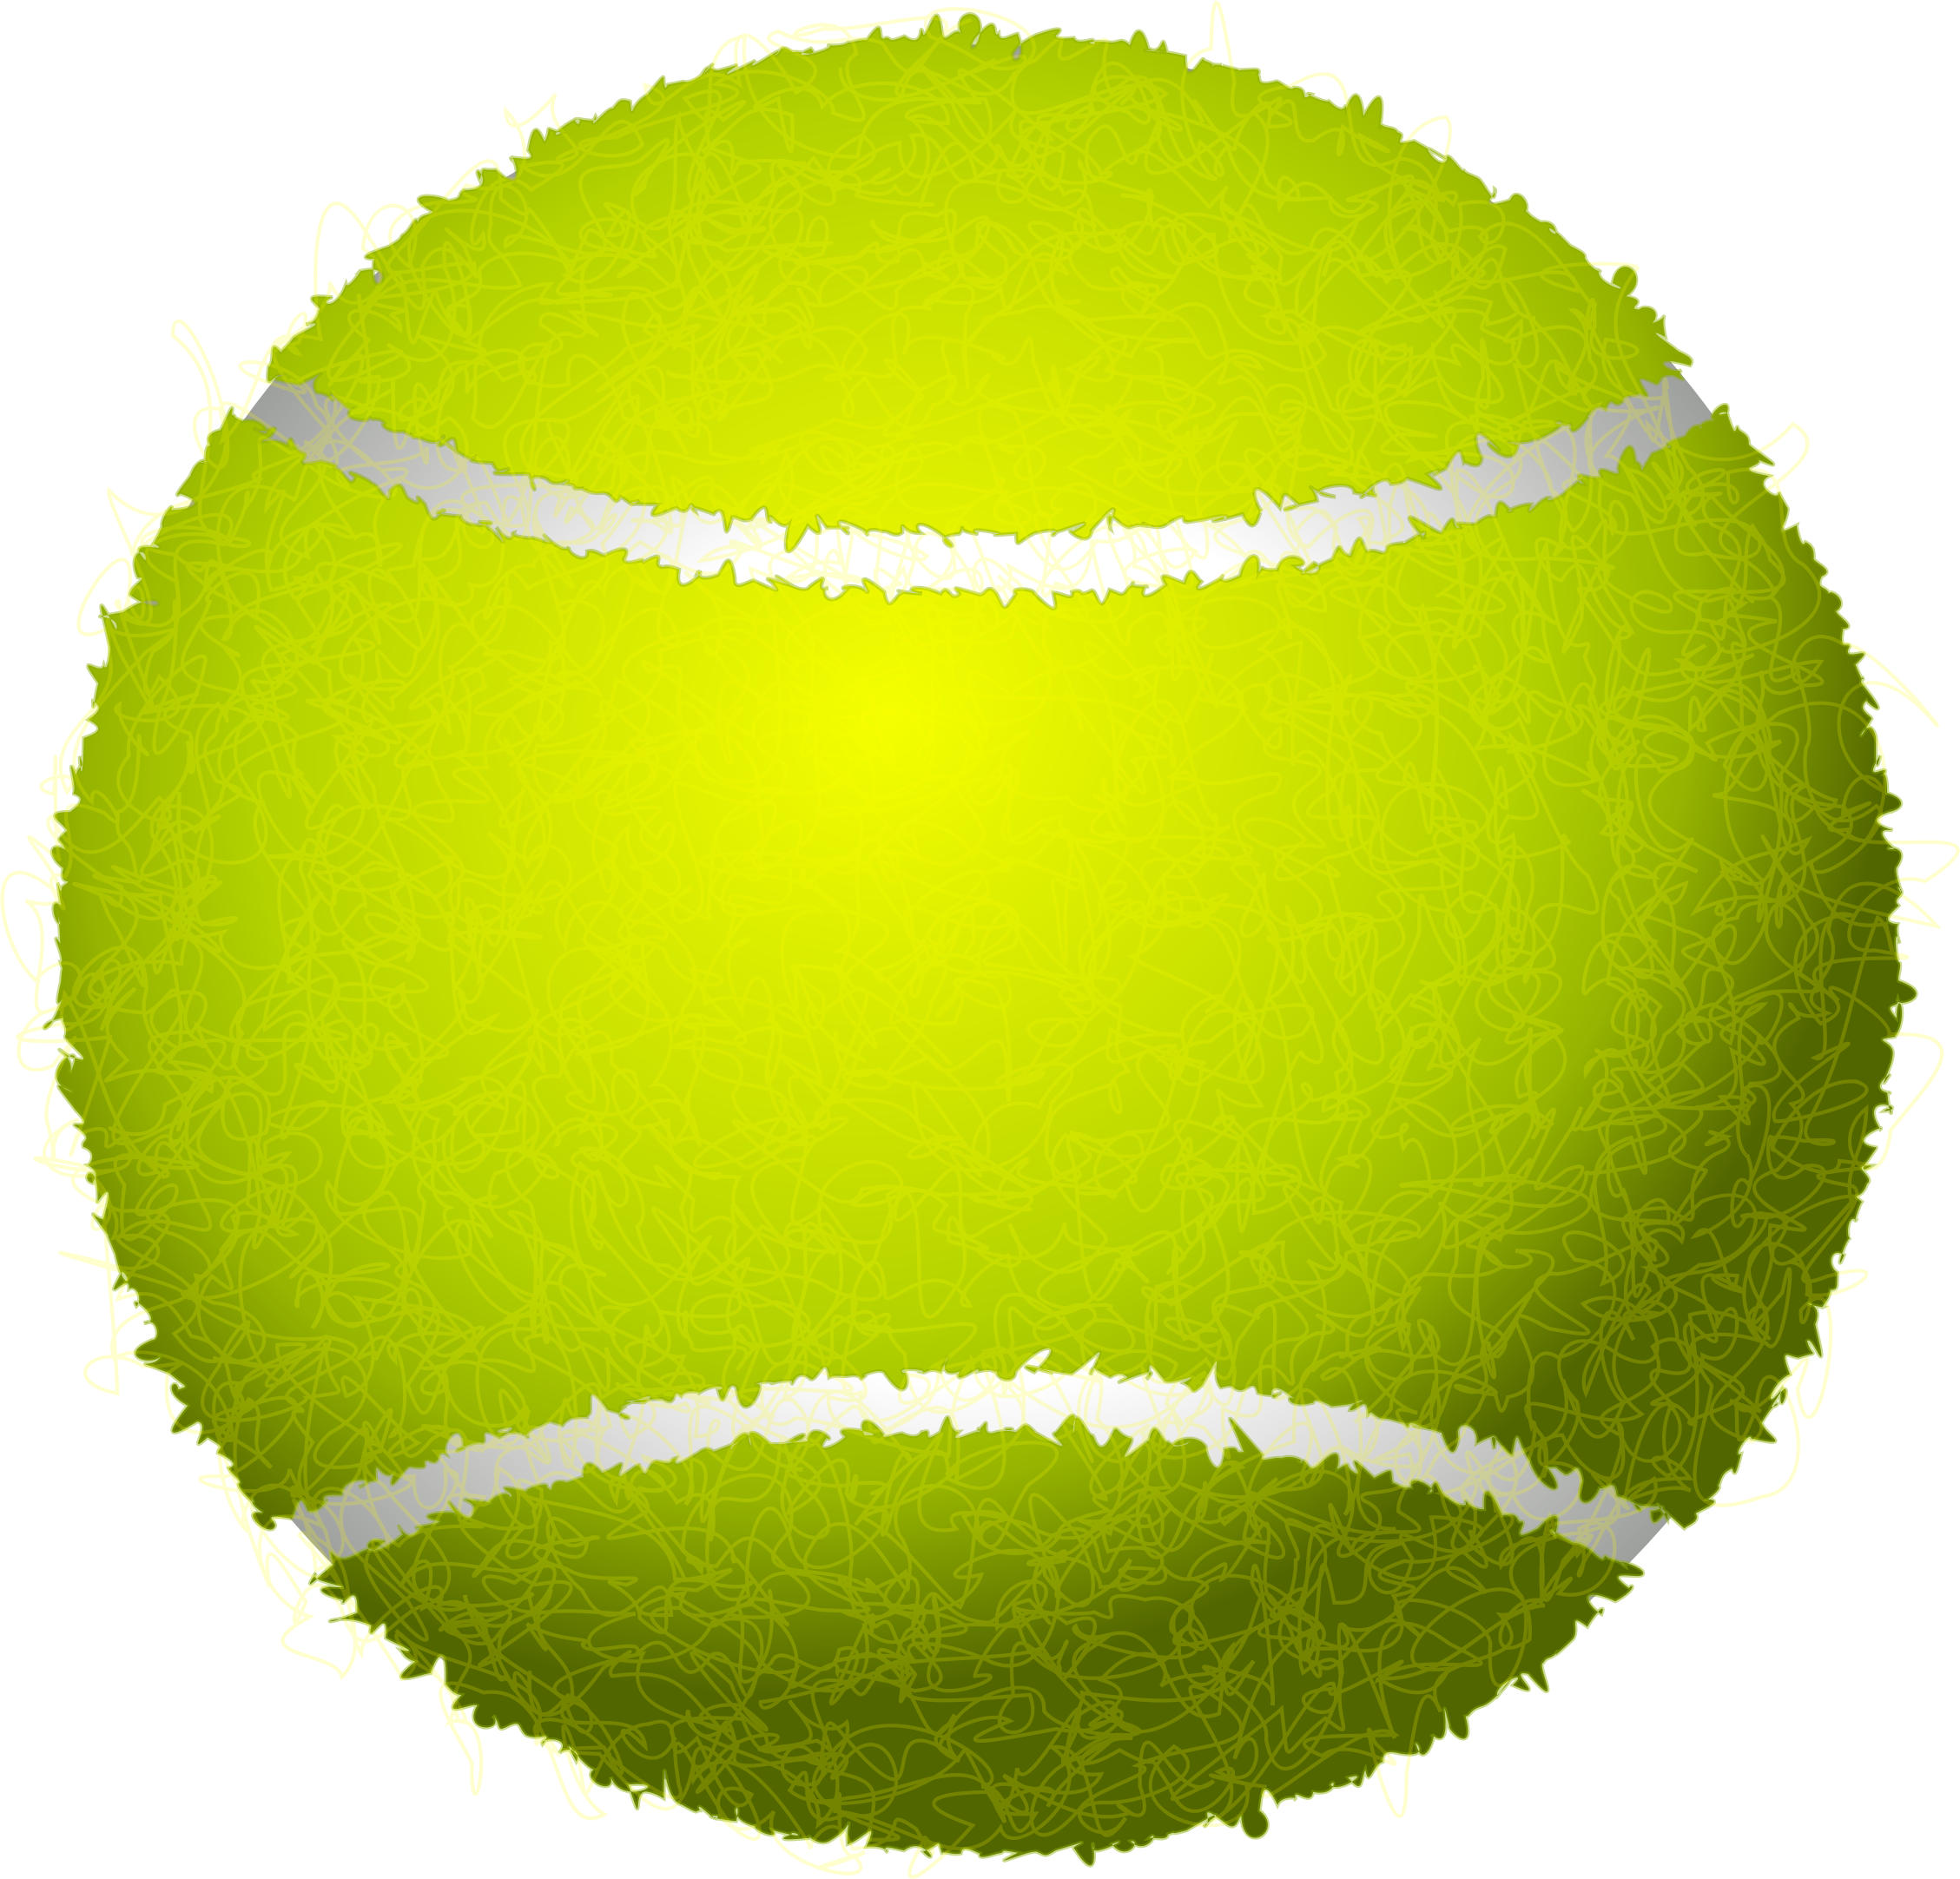 Tennis Ball NoShadow by rduris